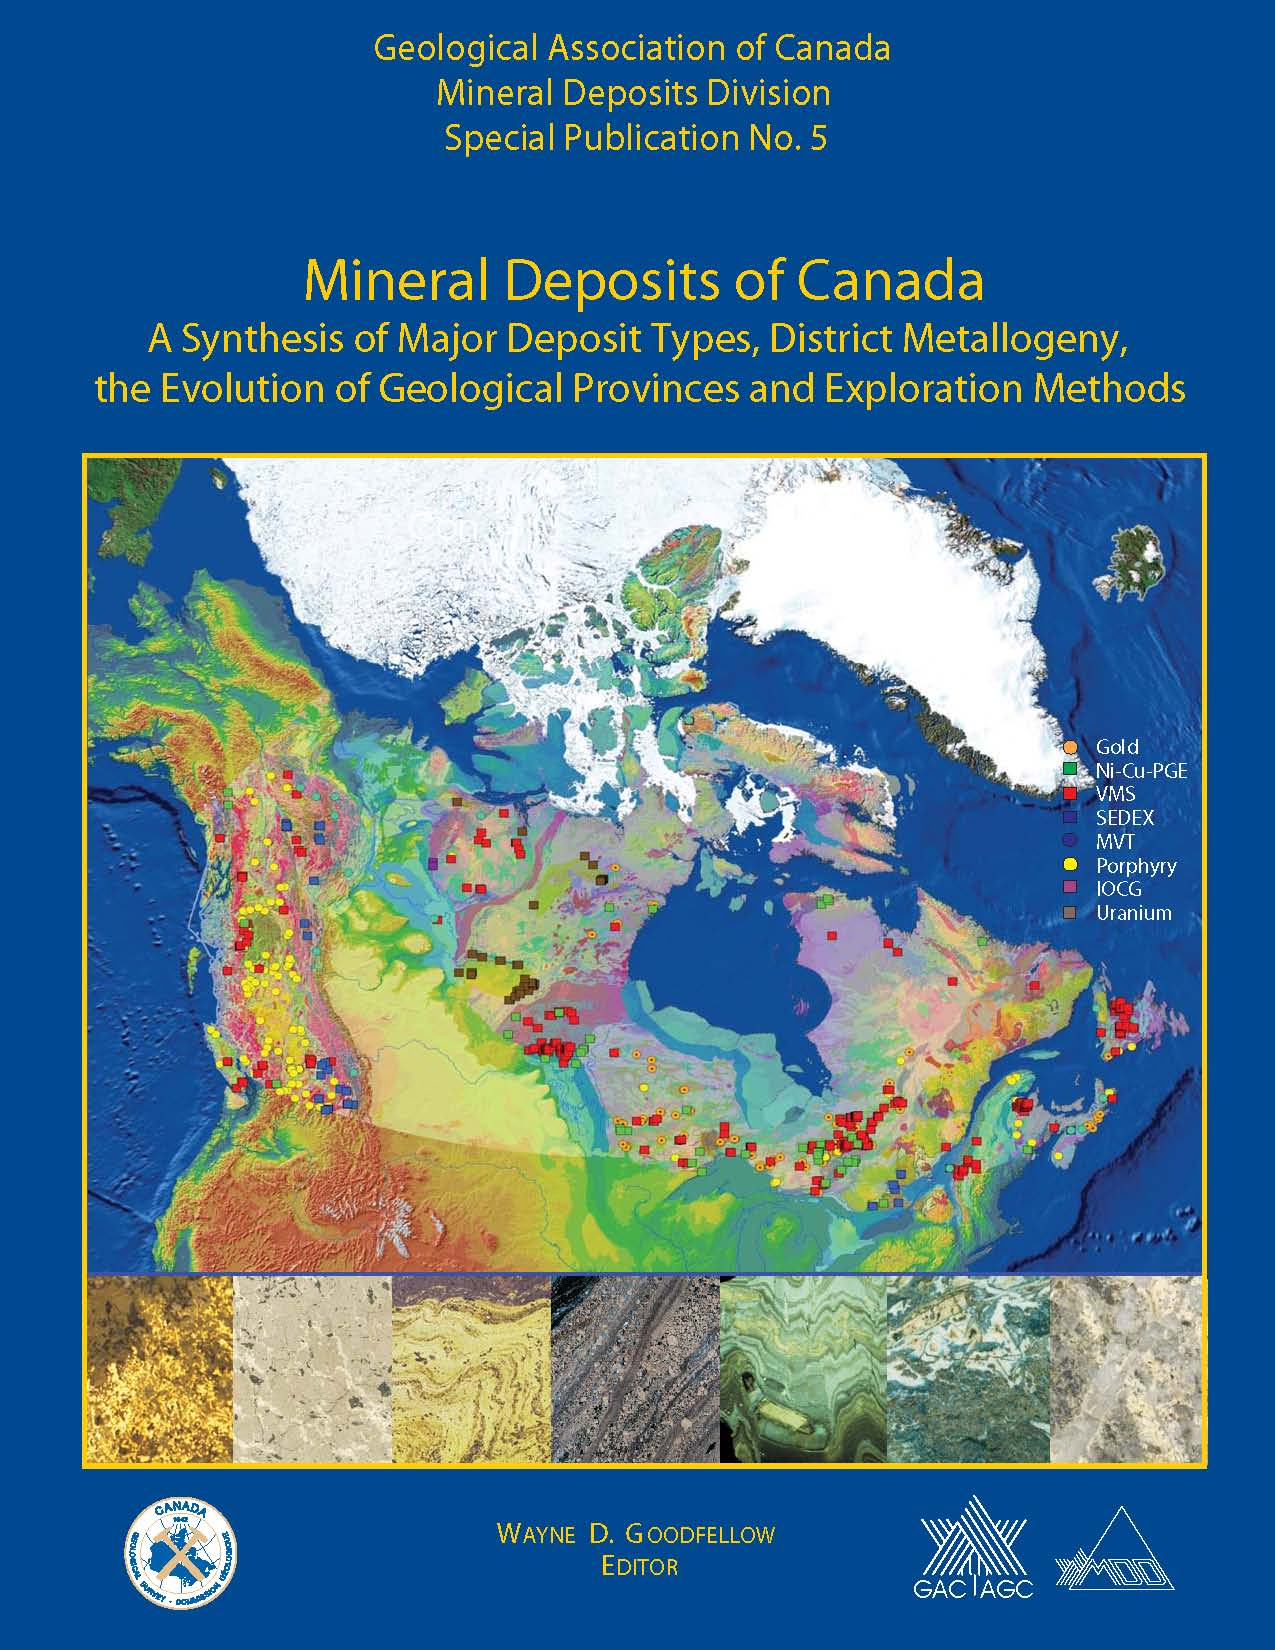 MDD SP 5: Mineral Deposits of Canada: A Synthesis of Major